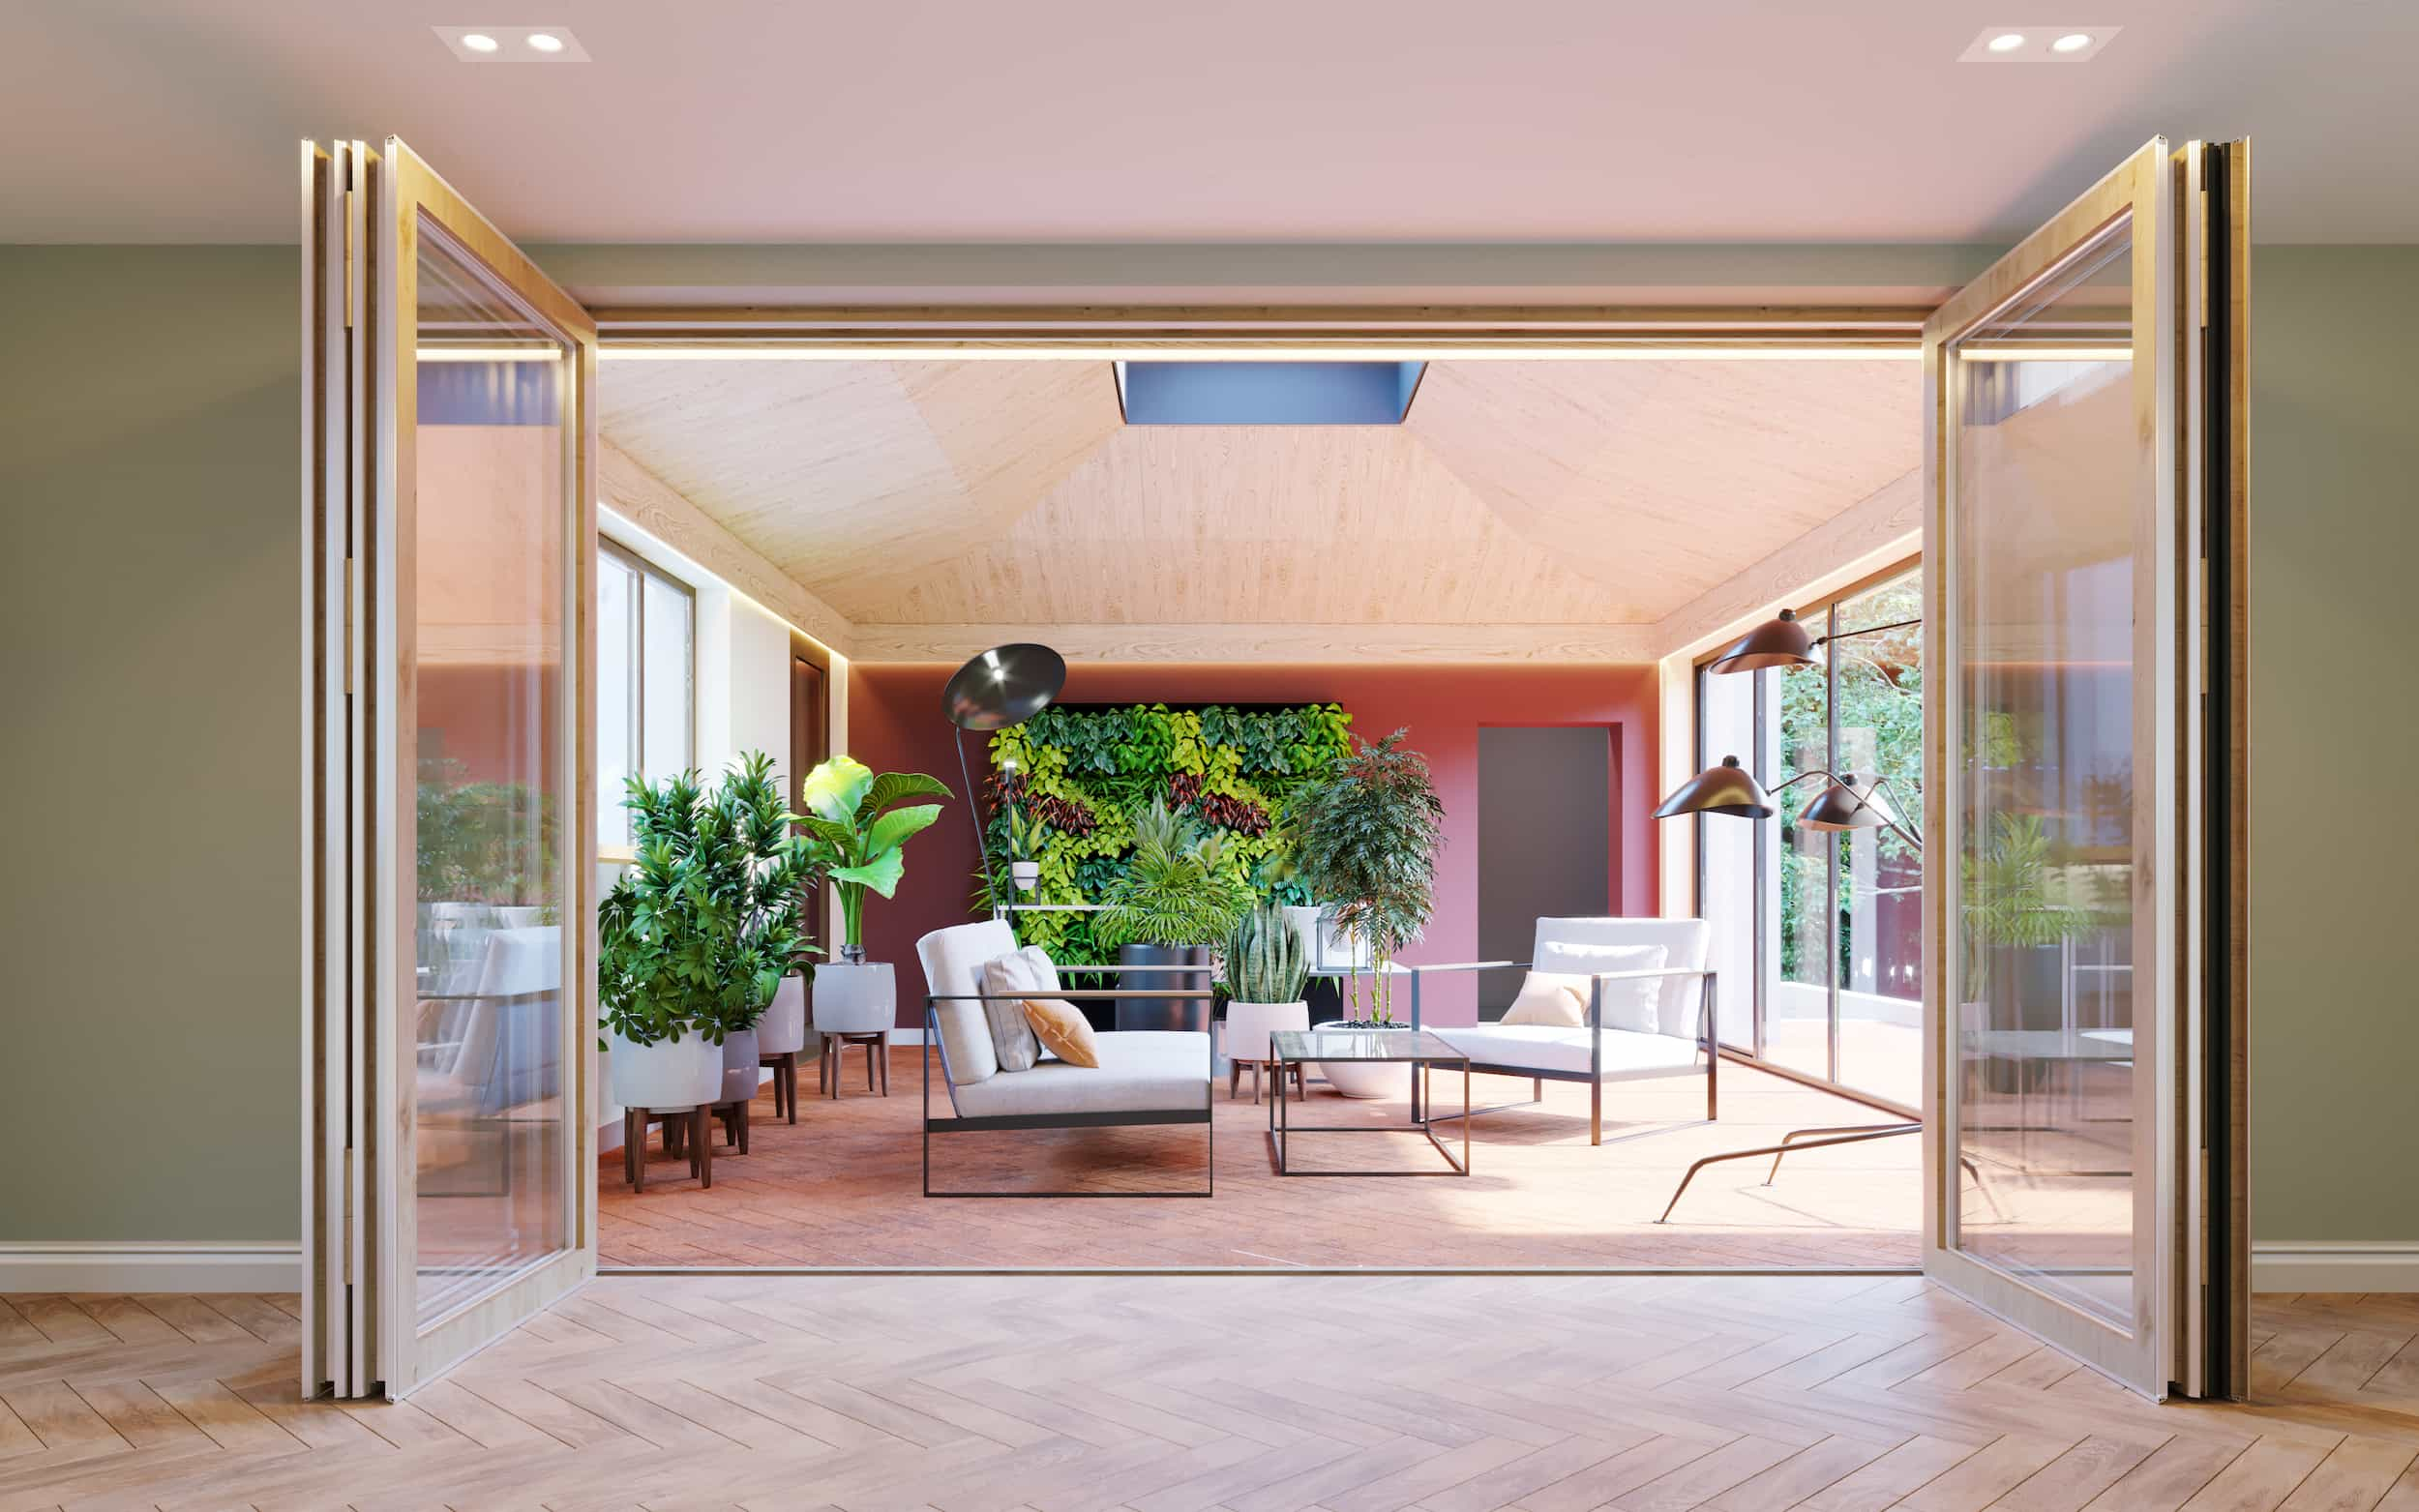 Computer generated image view of garden room with pink wall and living green wall of ferns and succulents through large glass double doors